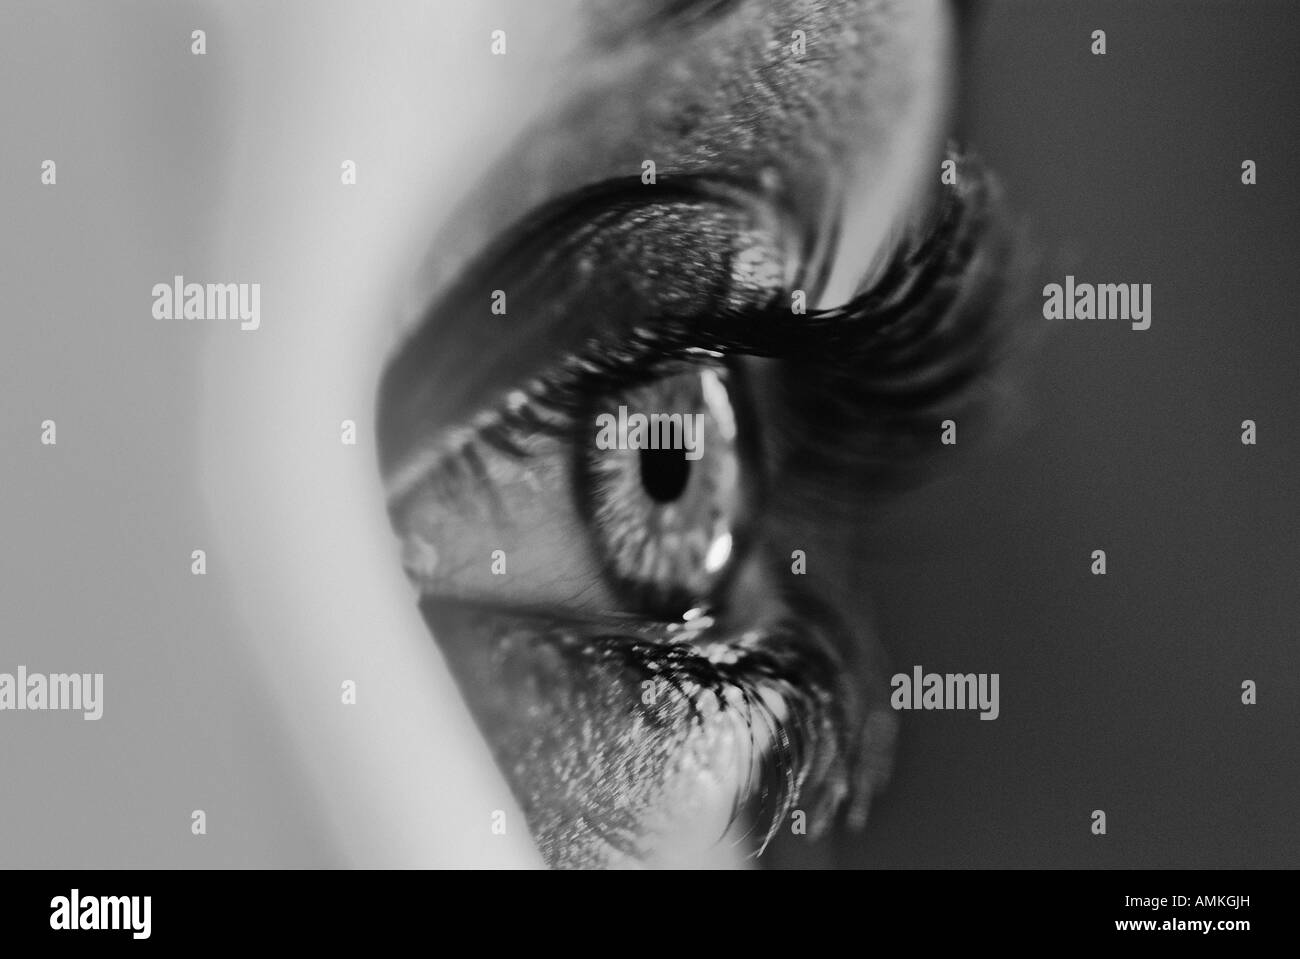 Black and white image of an human eye stock image